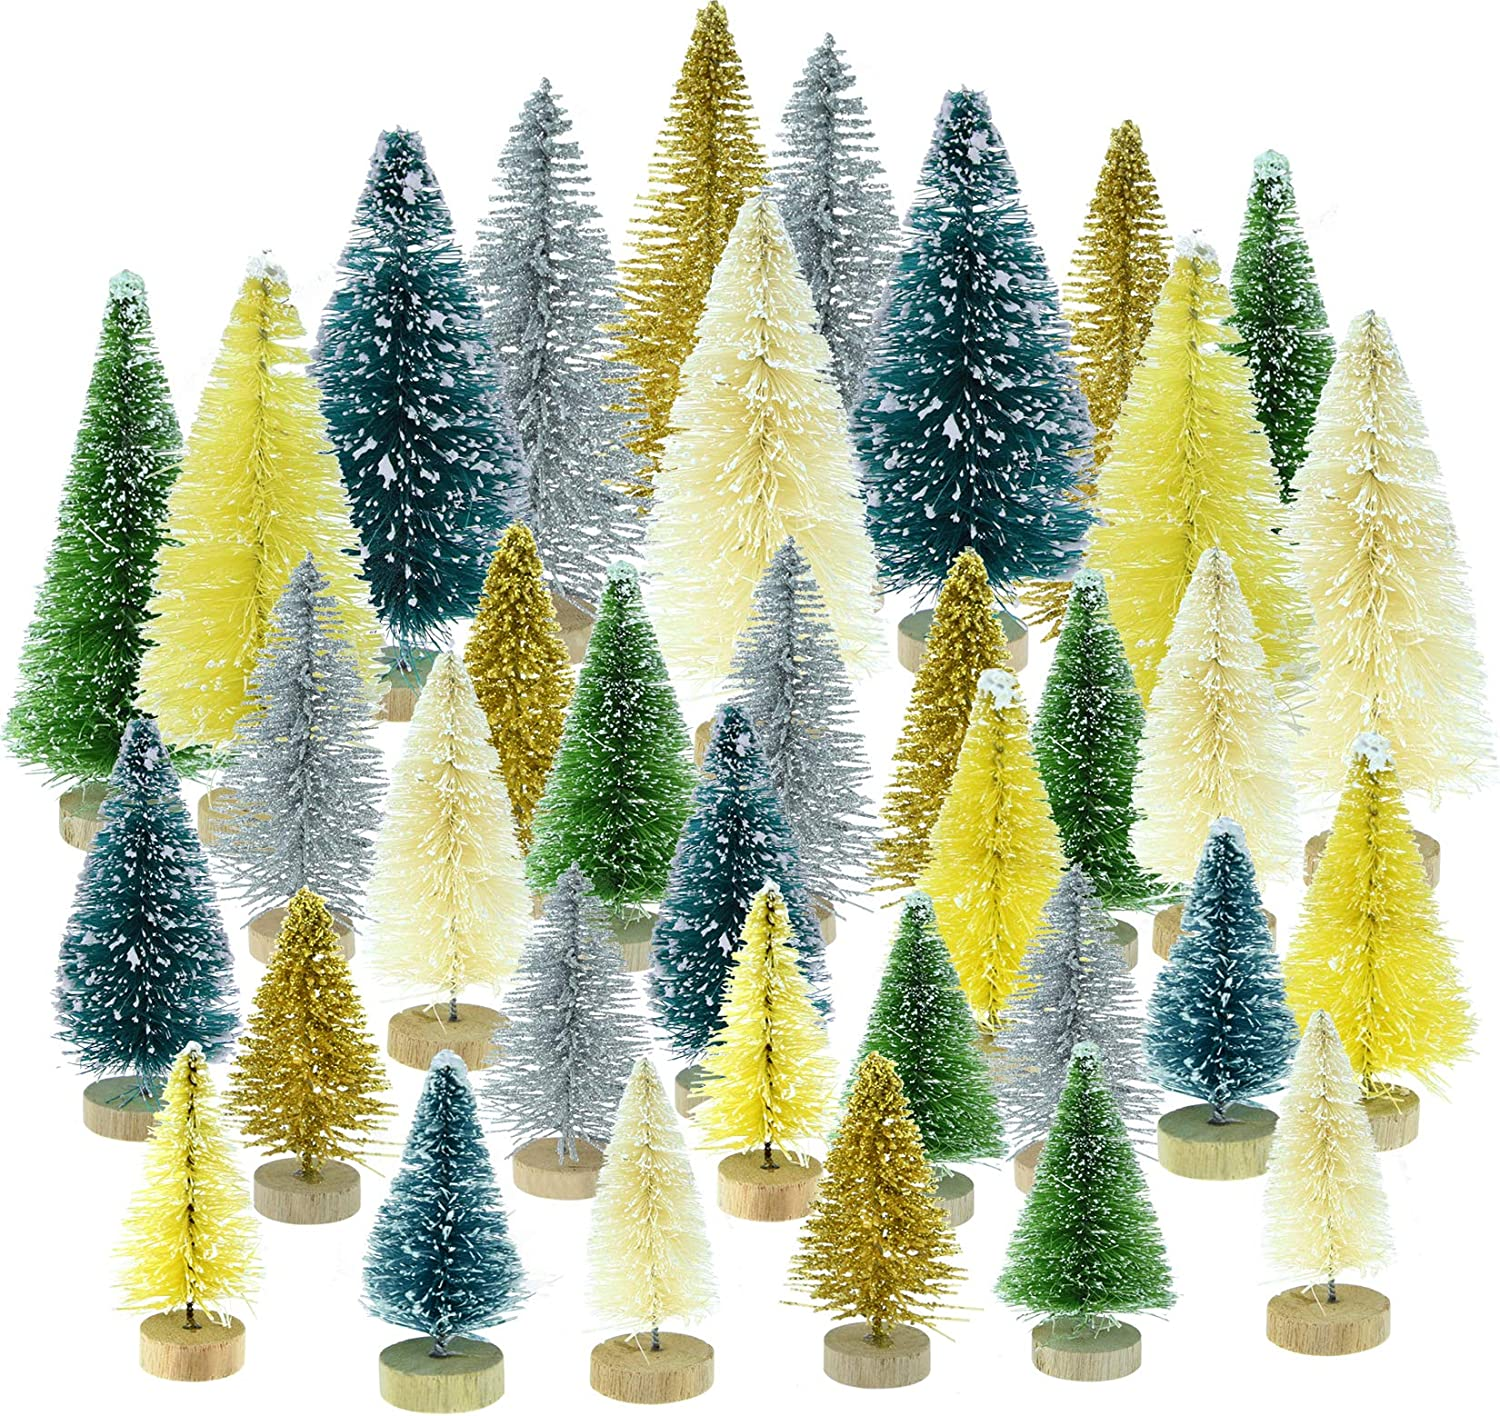 Topbuti 36 Pcs Mini Christmas Trees Bottle Brush Trees Sisal Snow Frost Trees Diorama Tree Pine Trees with Wood Base Green Mini Wreaths for Christmas Decoration Home DIY Décor Crafts Assorted Color